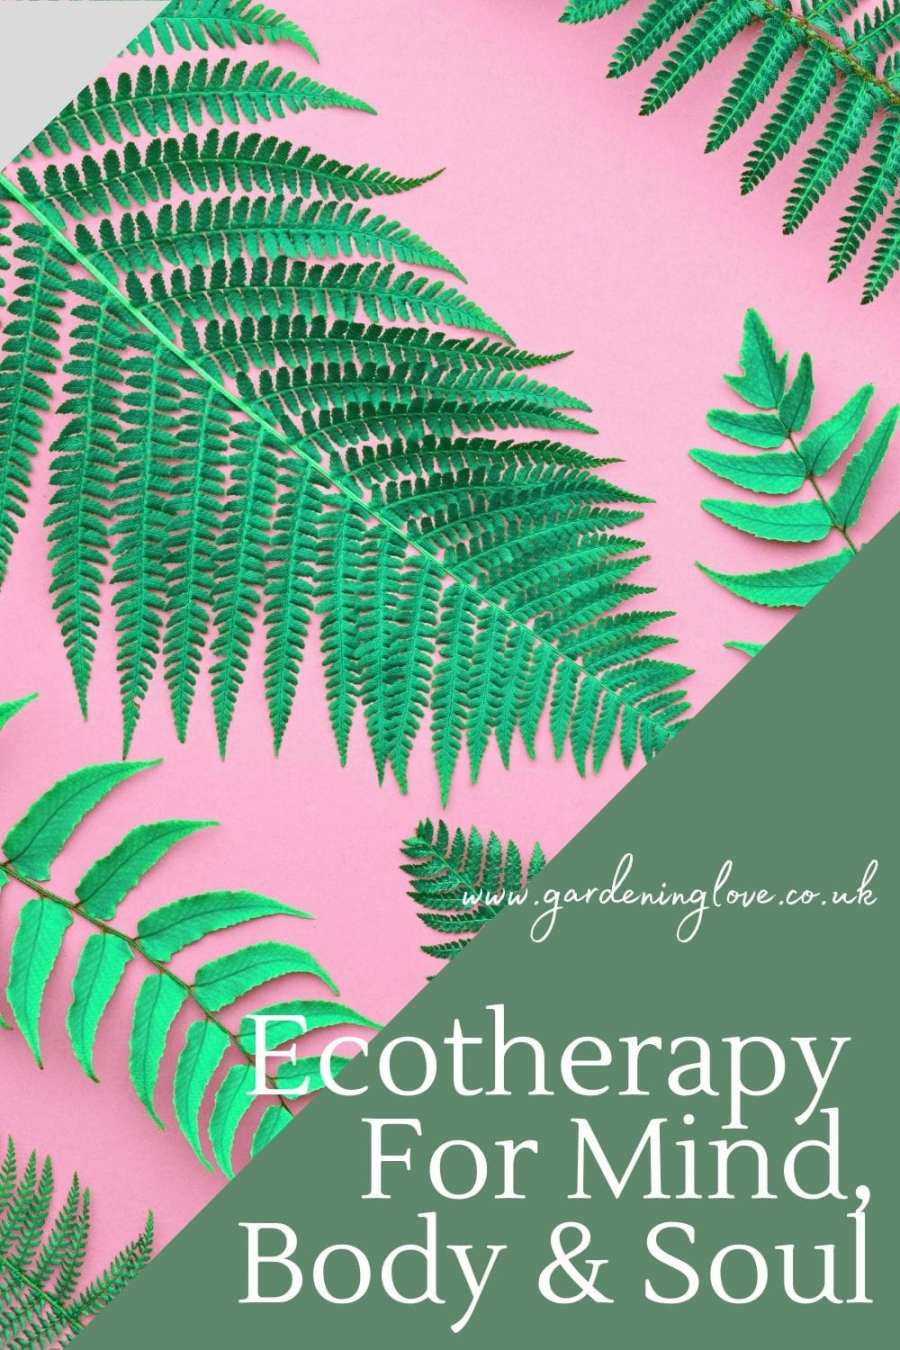 How to practice Ecotherapy as a part of your self care and wellness routine. The benefits of ecotherapy on mind, body and soul. #ecotherapy #nature #greentherapy #shinrin-yoku